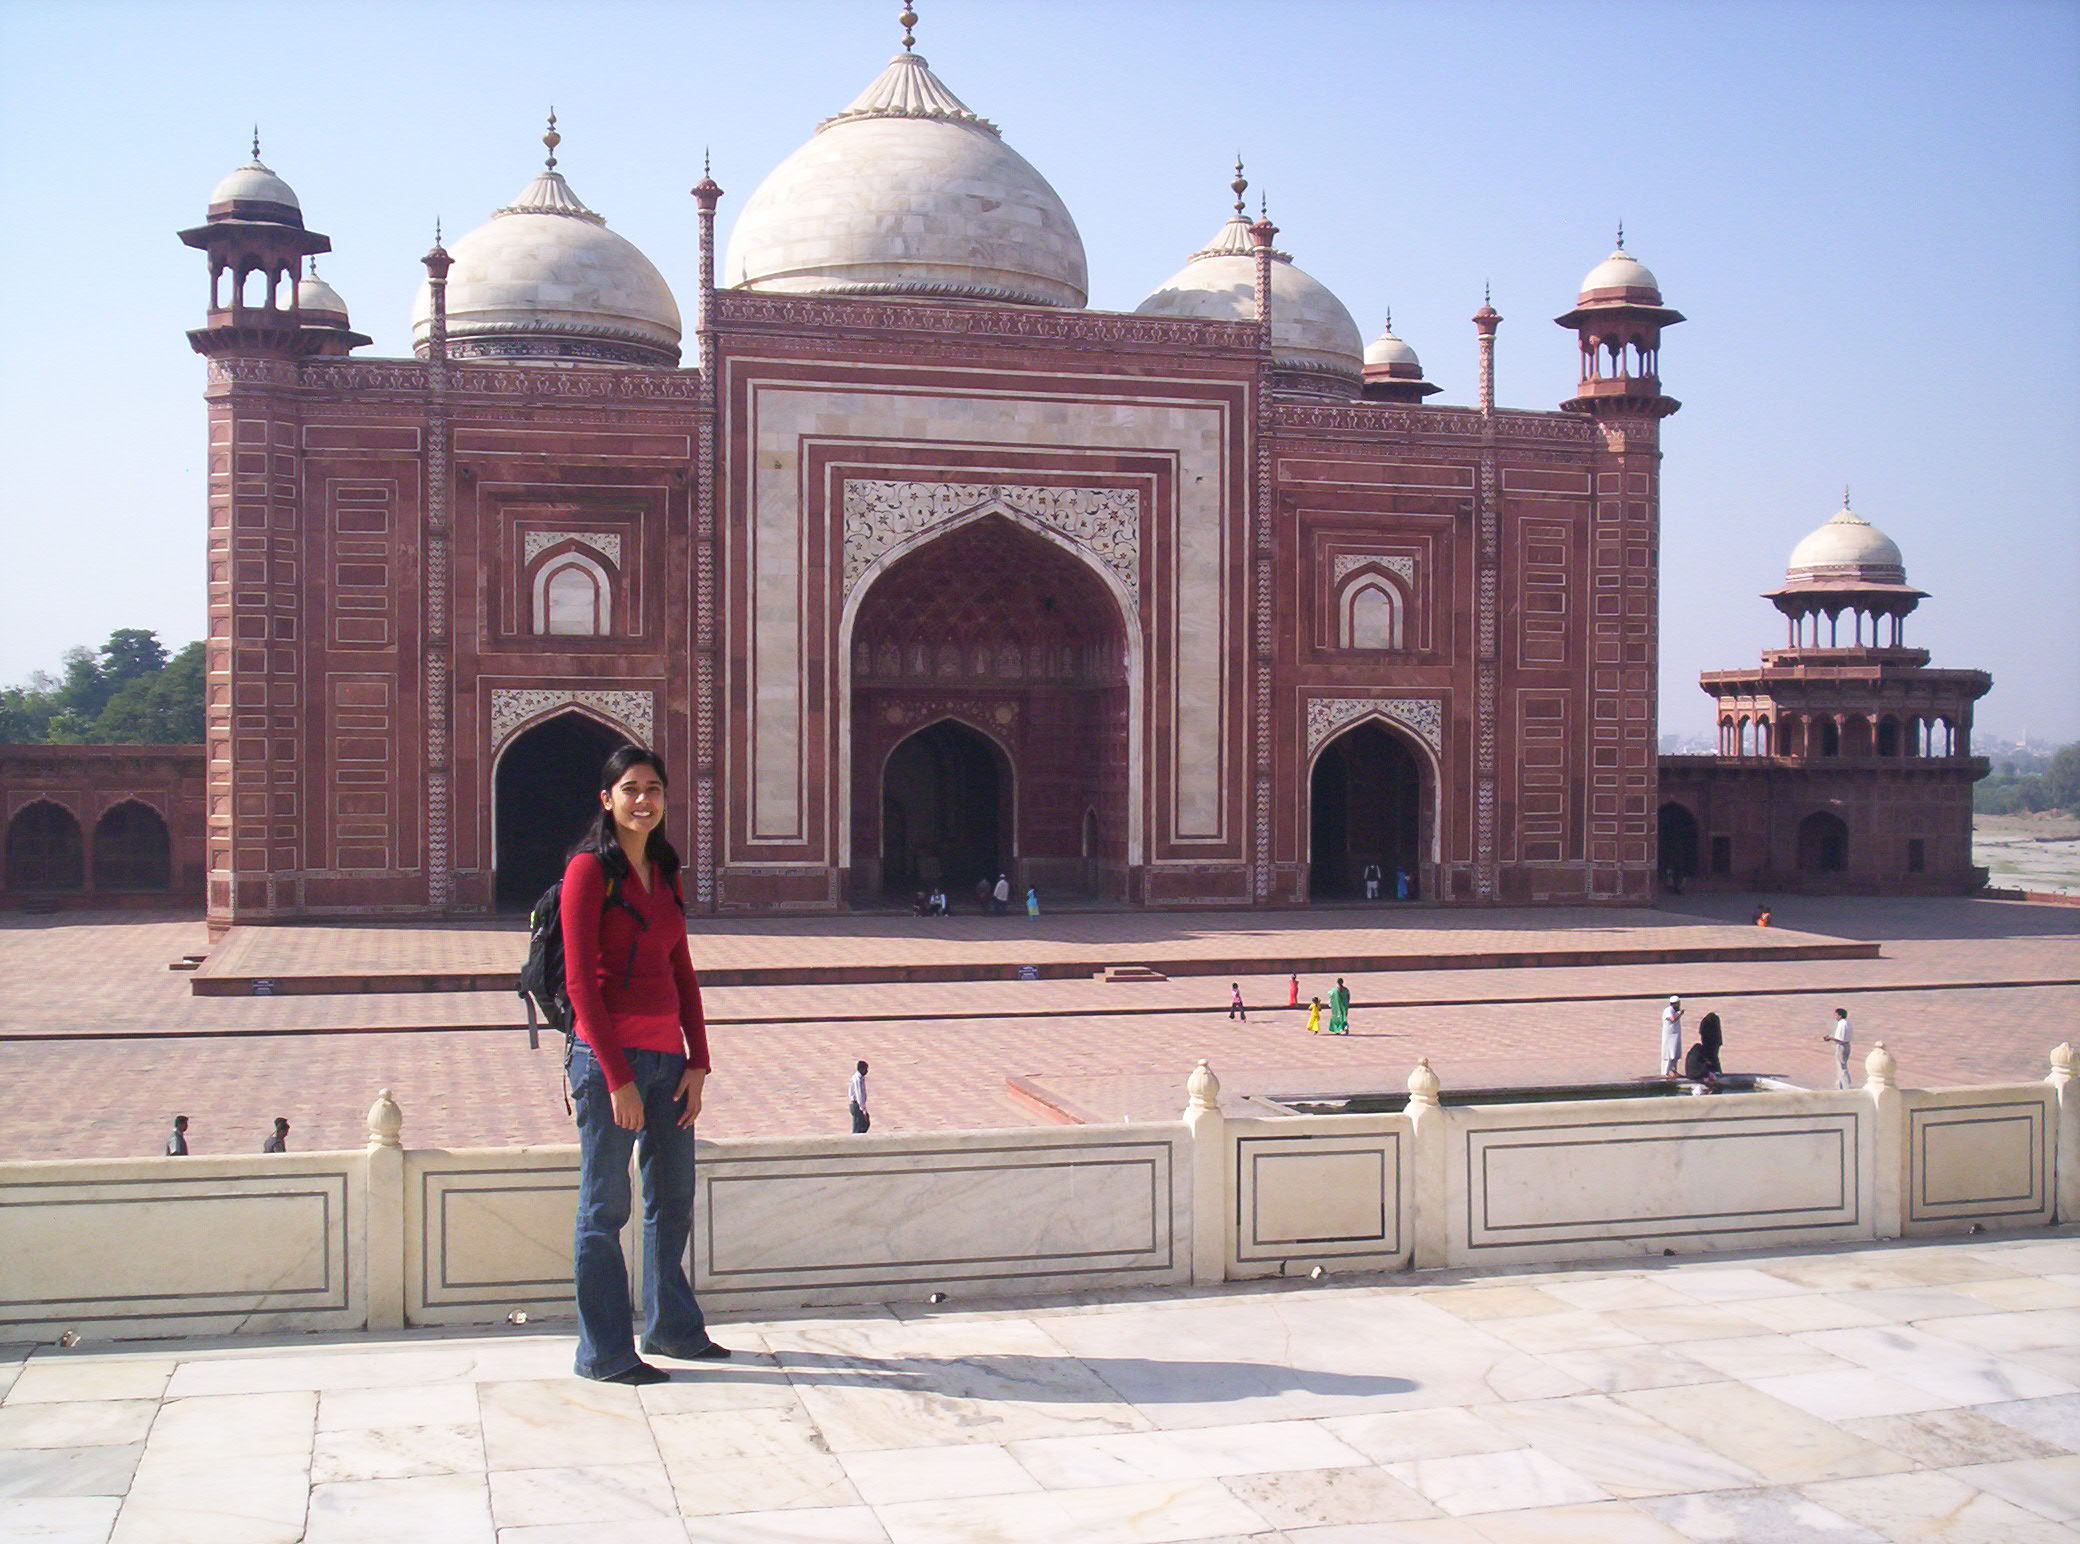 Red sandstone taj mahal mosque rajnesh sharma for Taj mahal exterior design